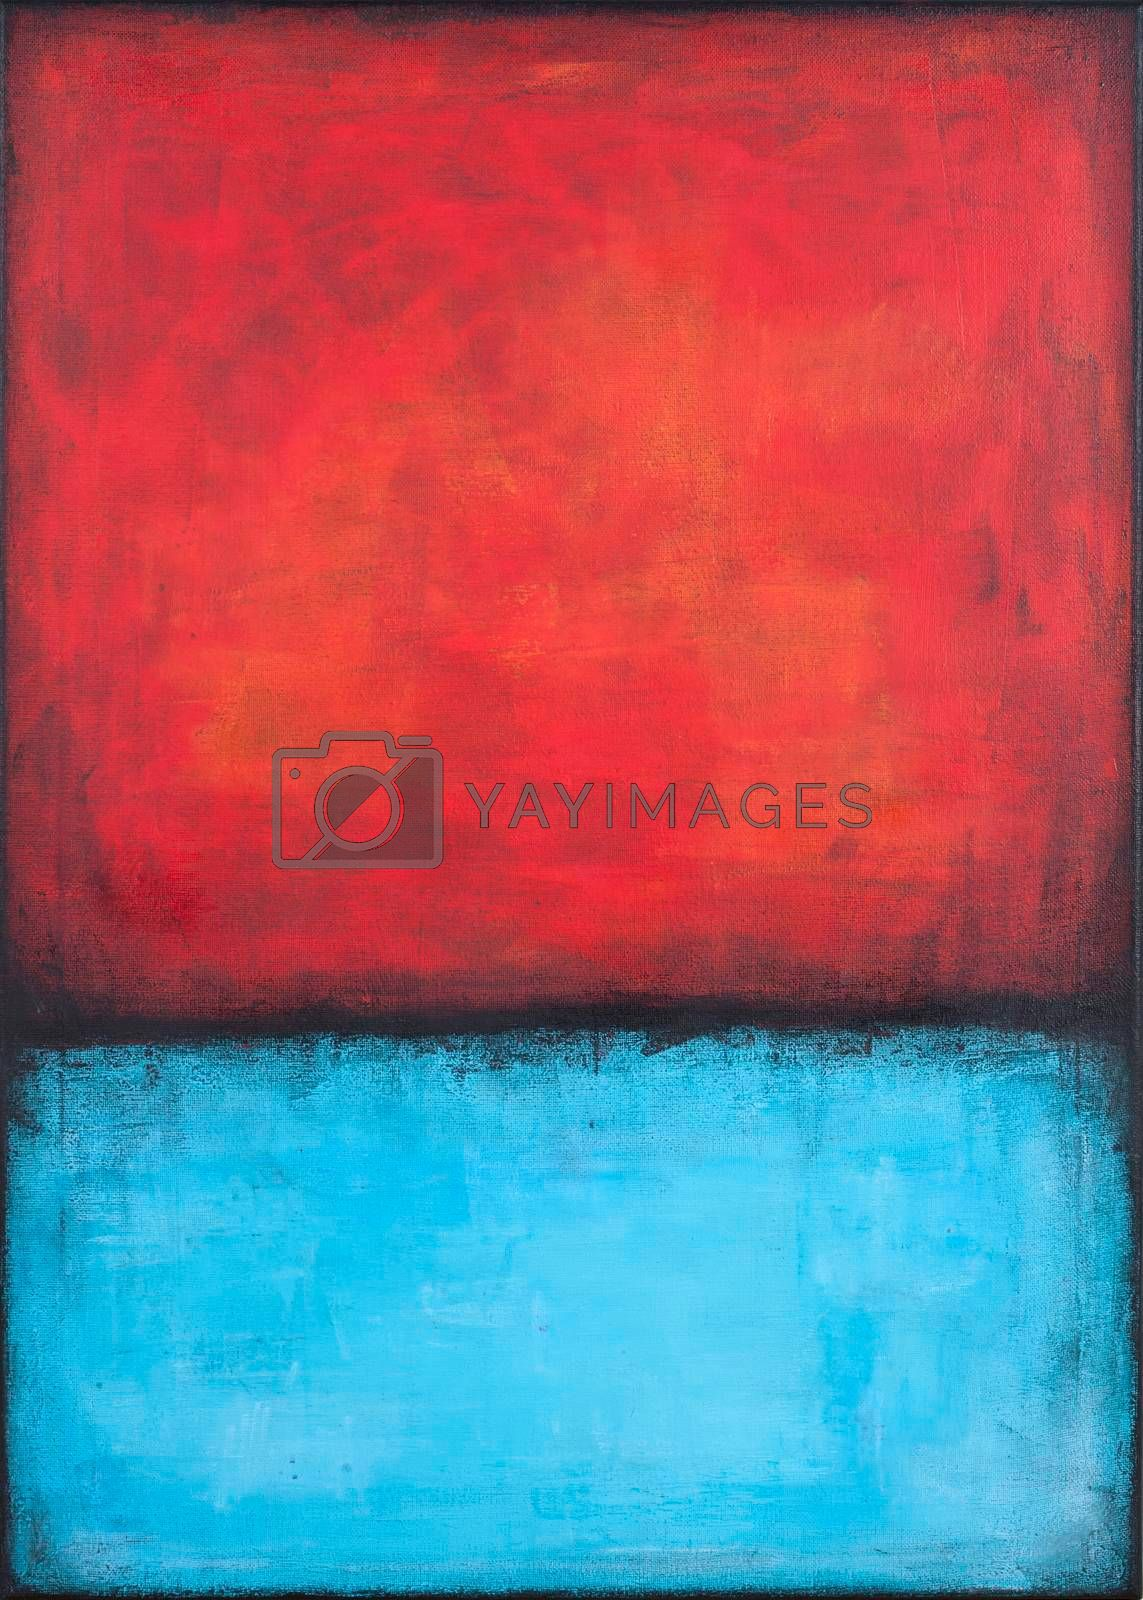 Red and blue grunge colored texture background. Decorative painting.